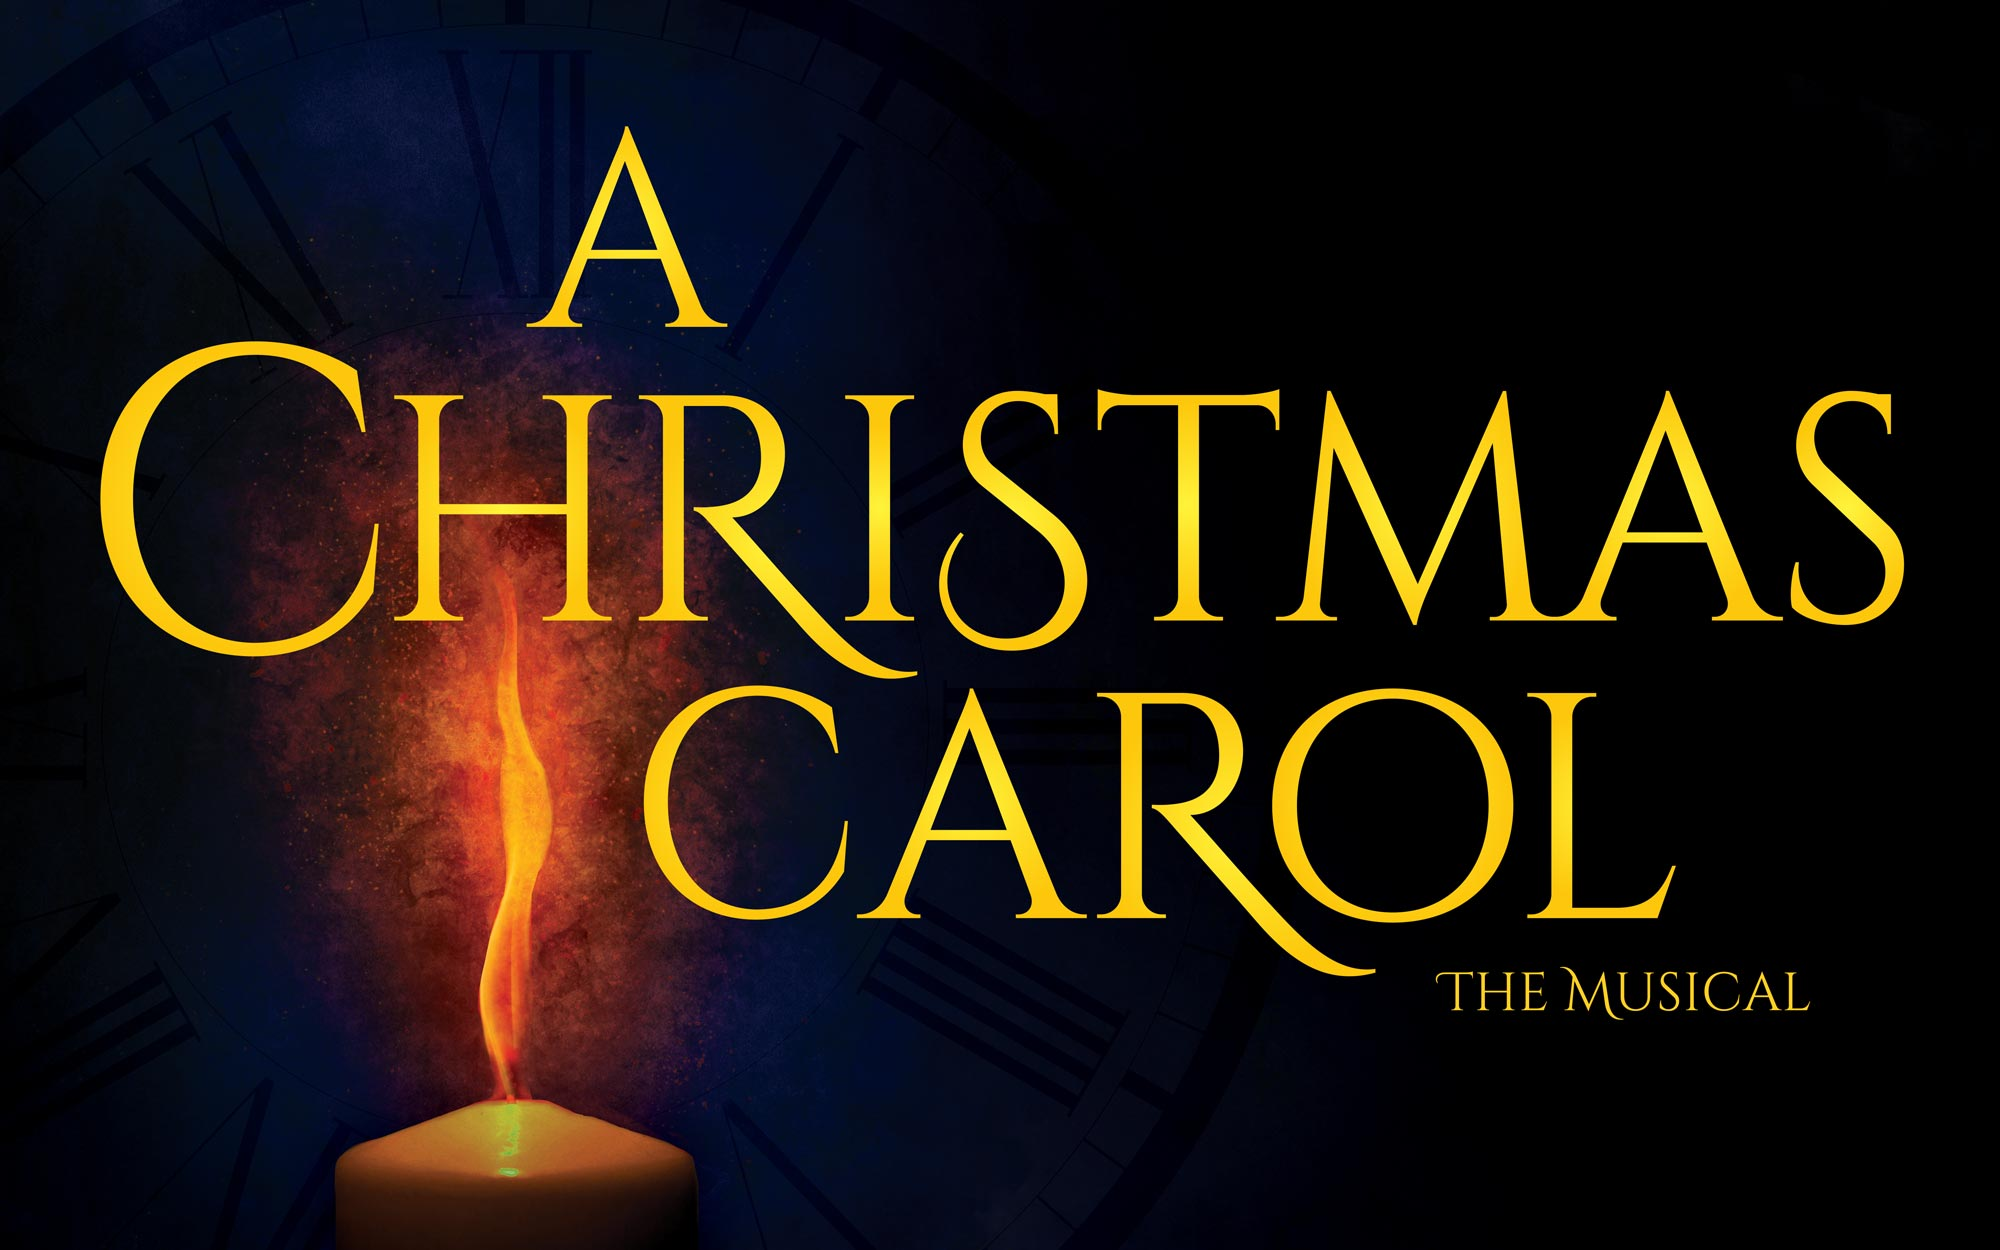 "<p style=""font-size:16px""><i>A Christmas Carol, The Musical</style></i>"